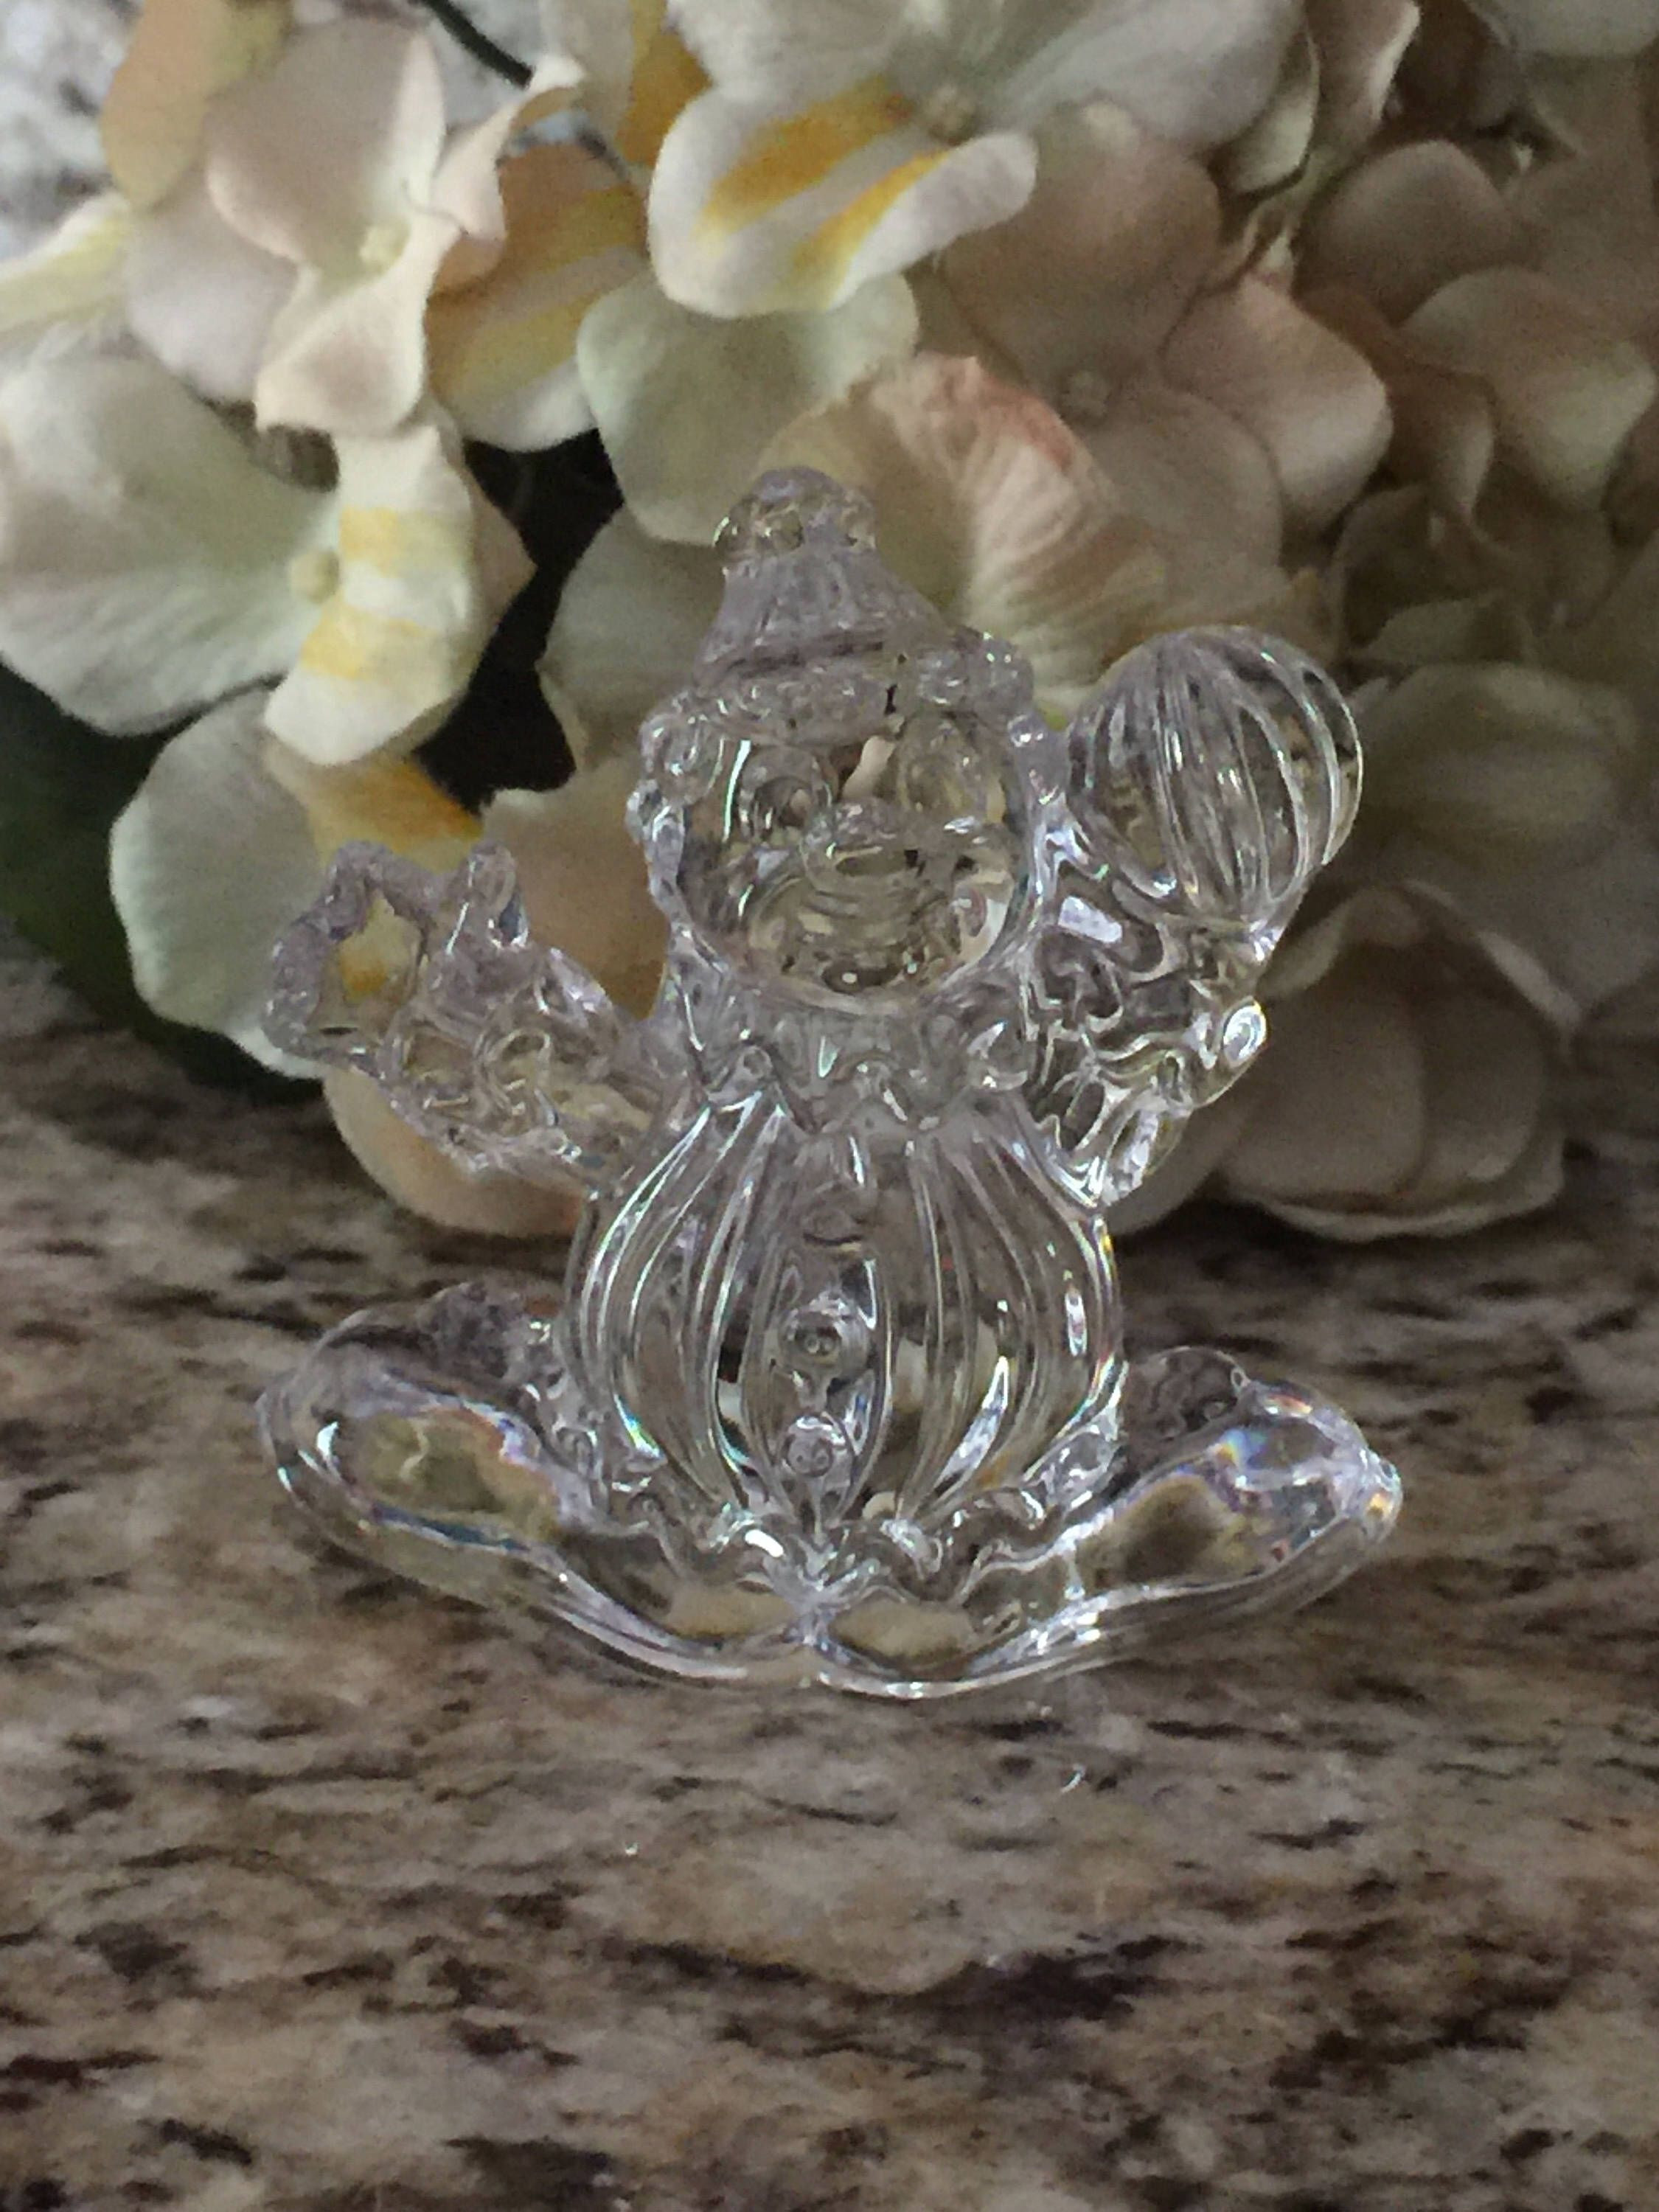 24 inch tall glass vases of princess house lead crystal clown figurine glass clown crystal within princess house lead crystal clown figurine glass clown crystal figurine clown statue 24 lead crystal by cottagehillcrafts on etsy